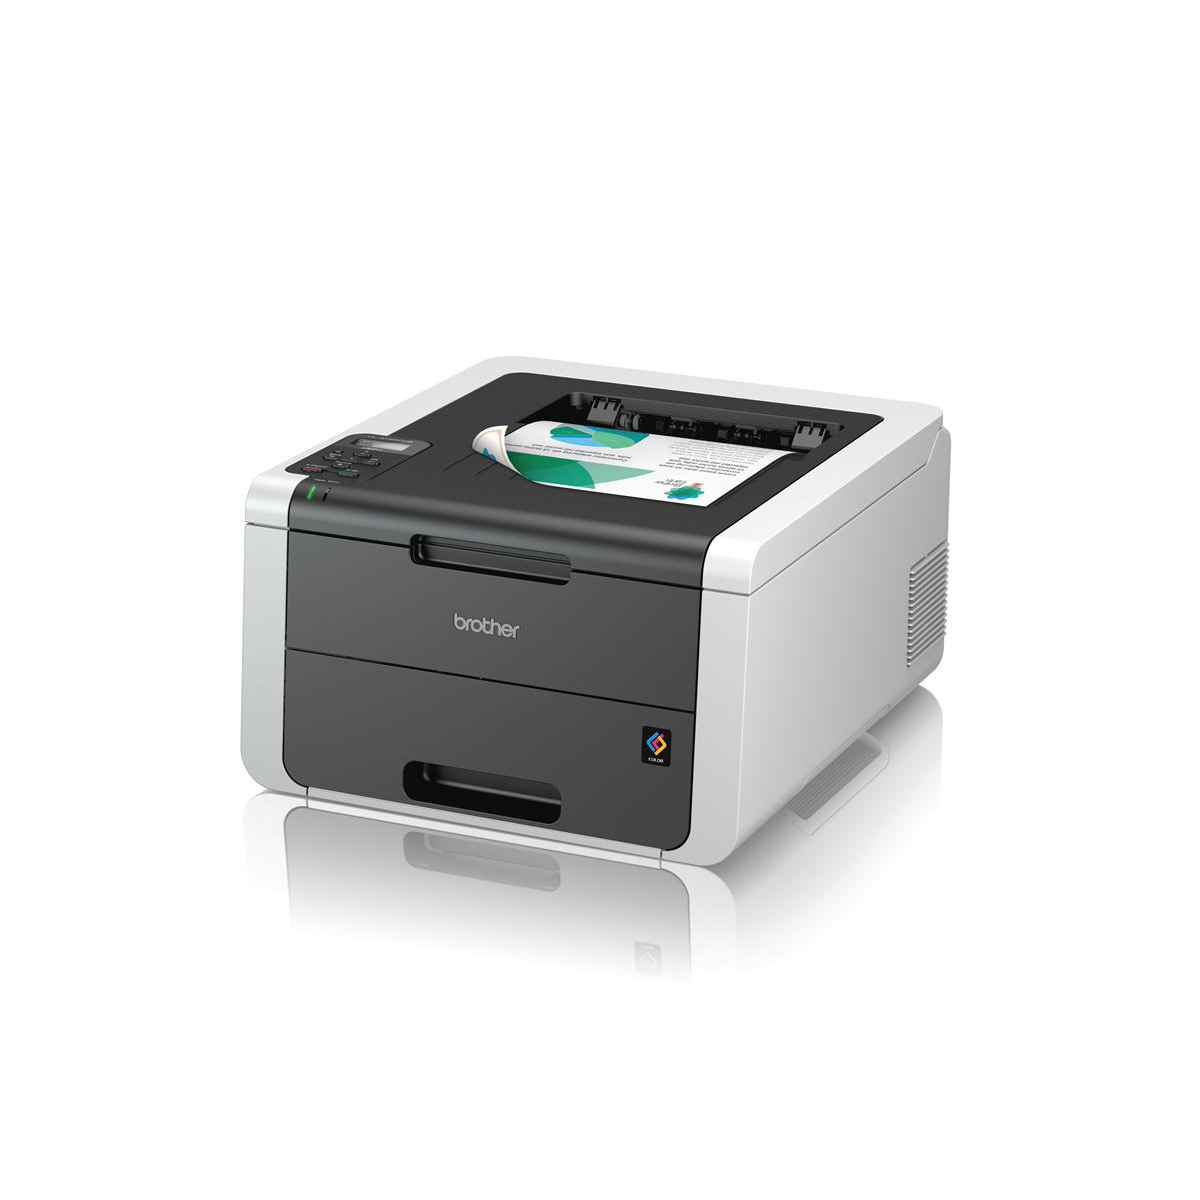 Image for Brother Colour Laser Duplex Printer with Wired and Wi-Fi Network Ref HL3150CDW